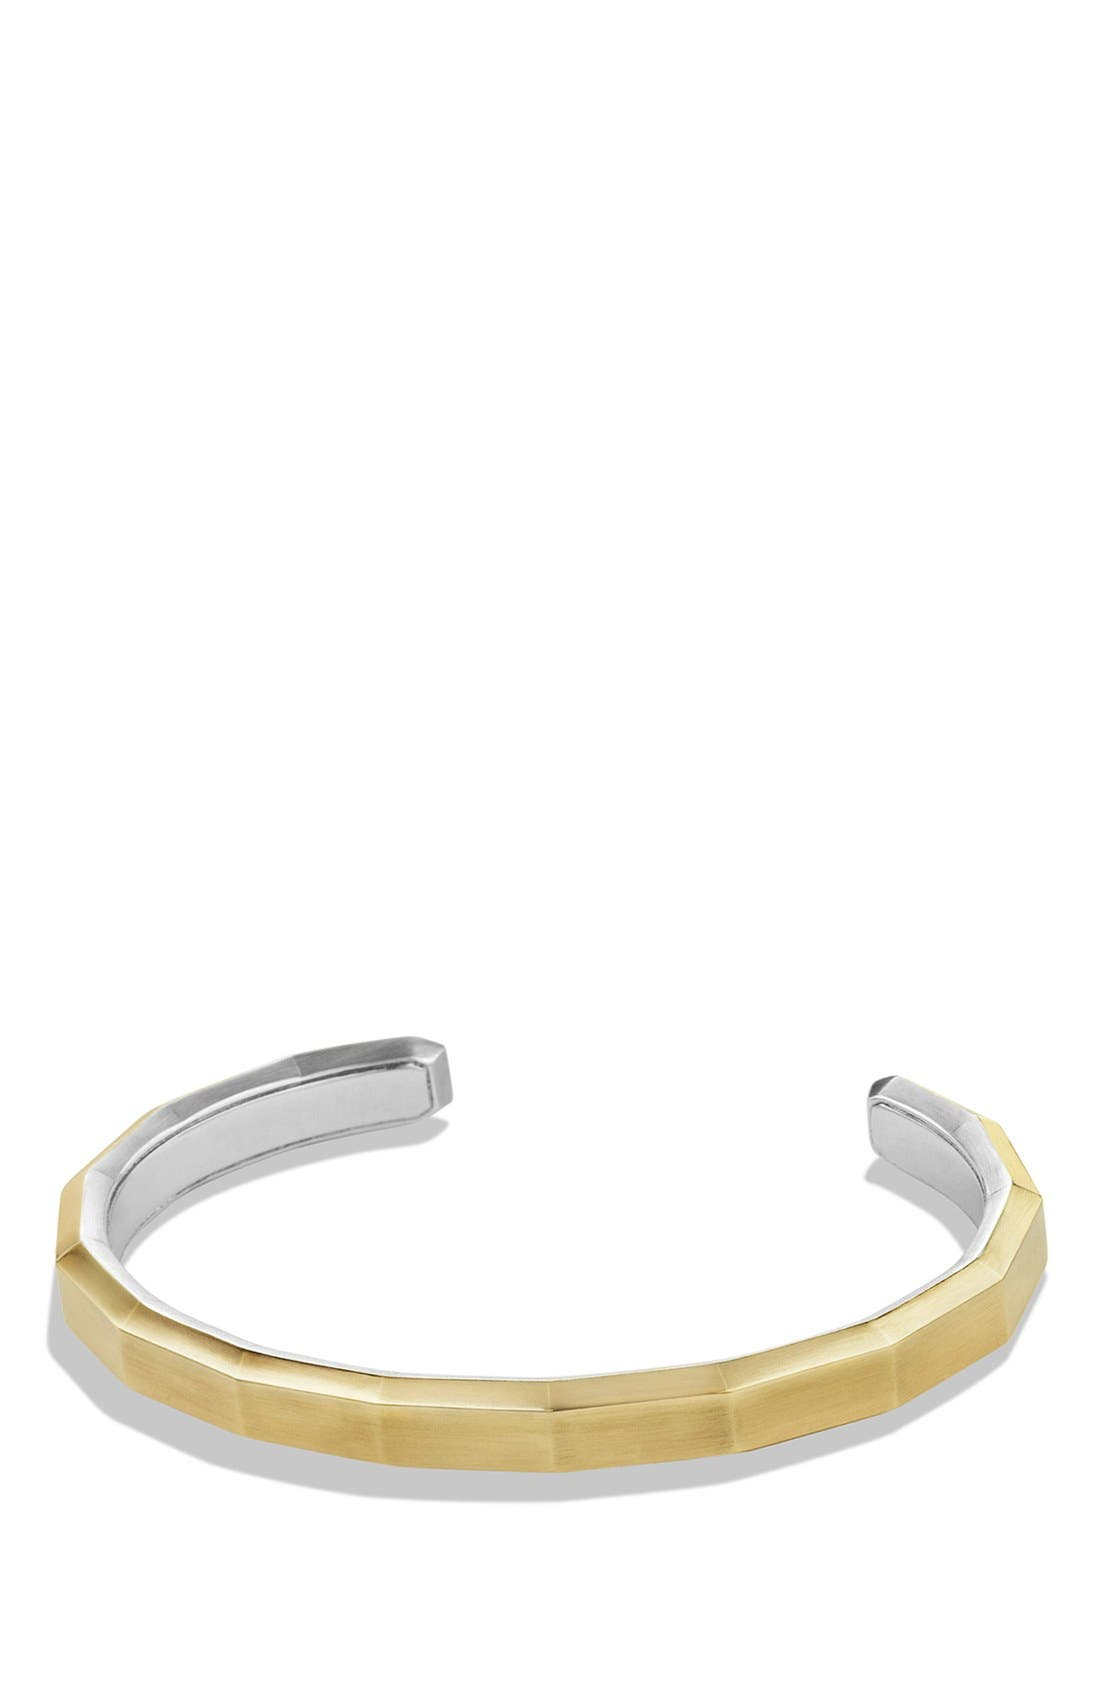 Alternate Image 1 Selected - David Yurman 'Faceted Metal' Cuff Bracelet with 18k Gold